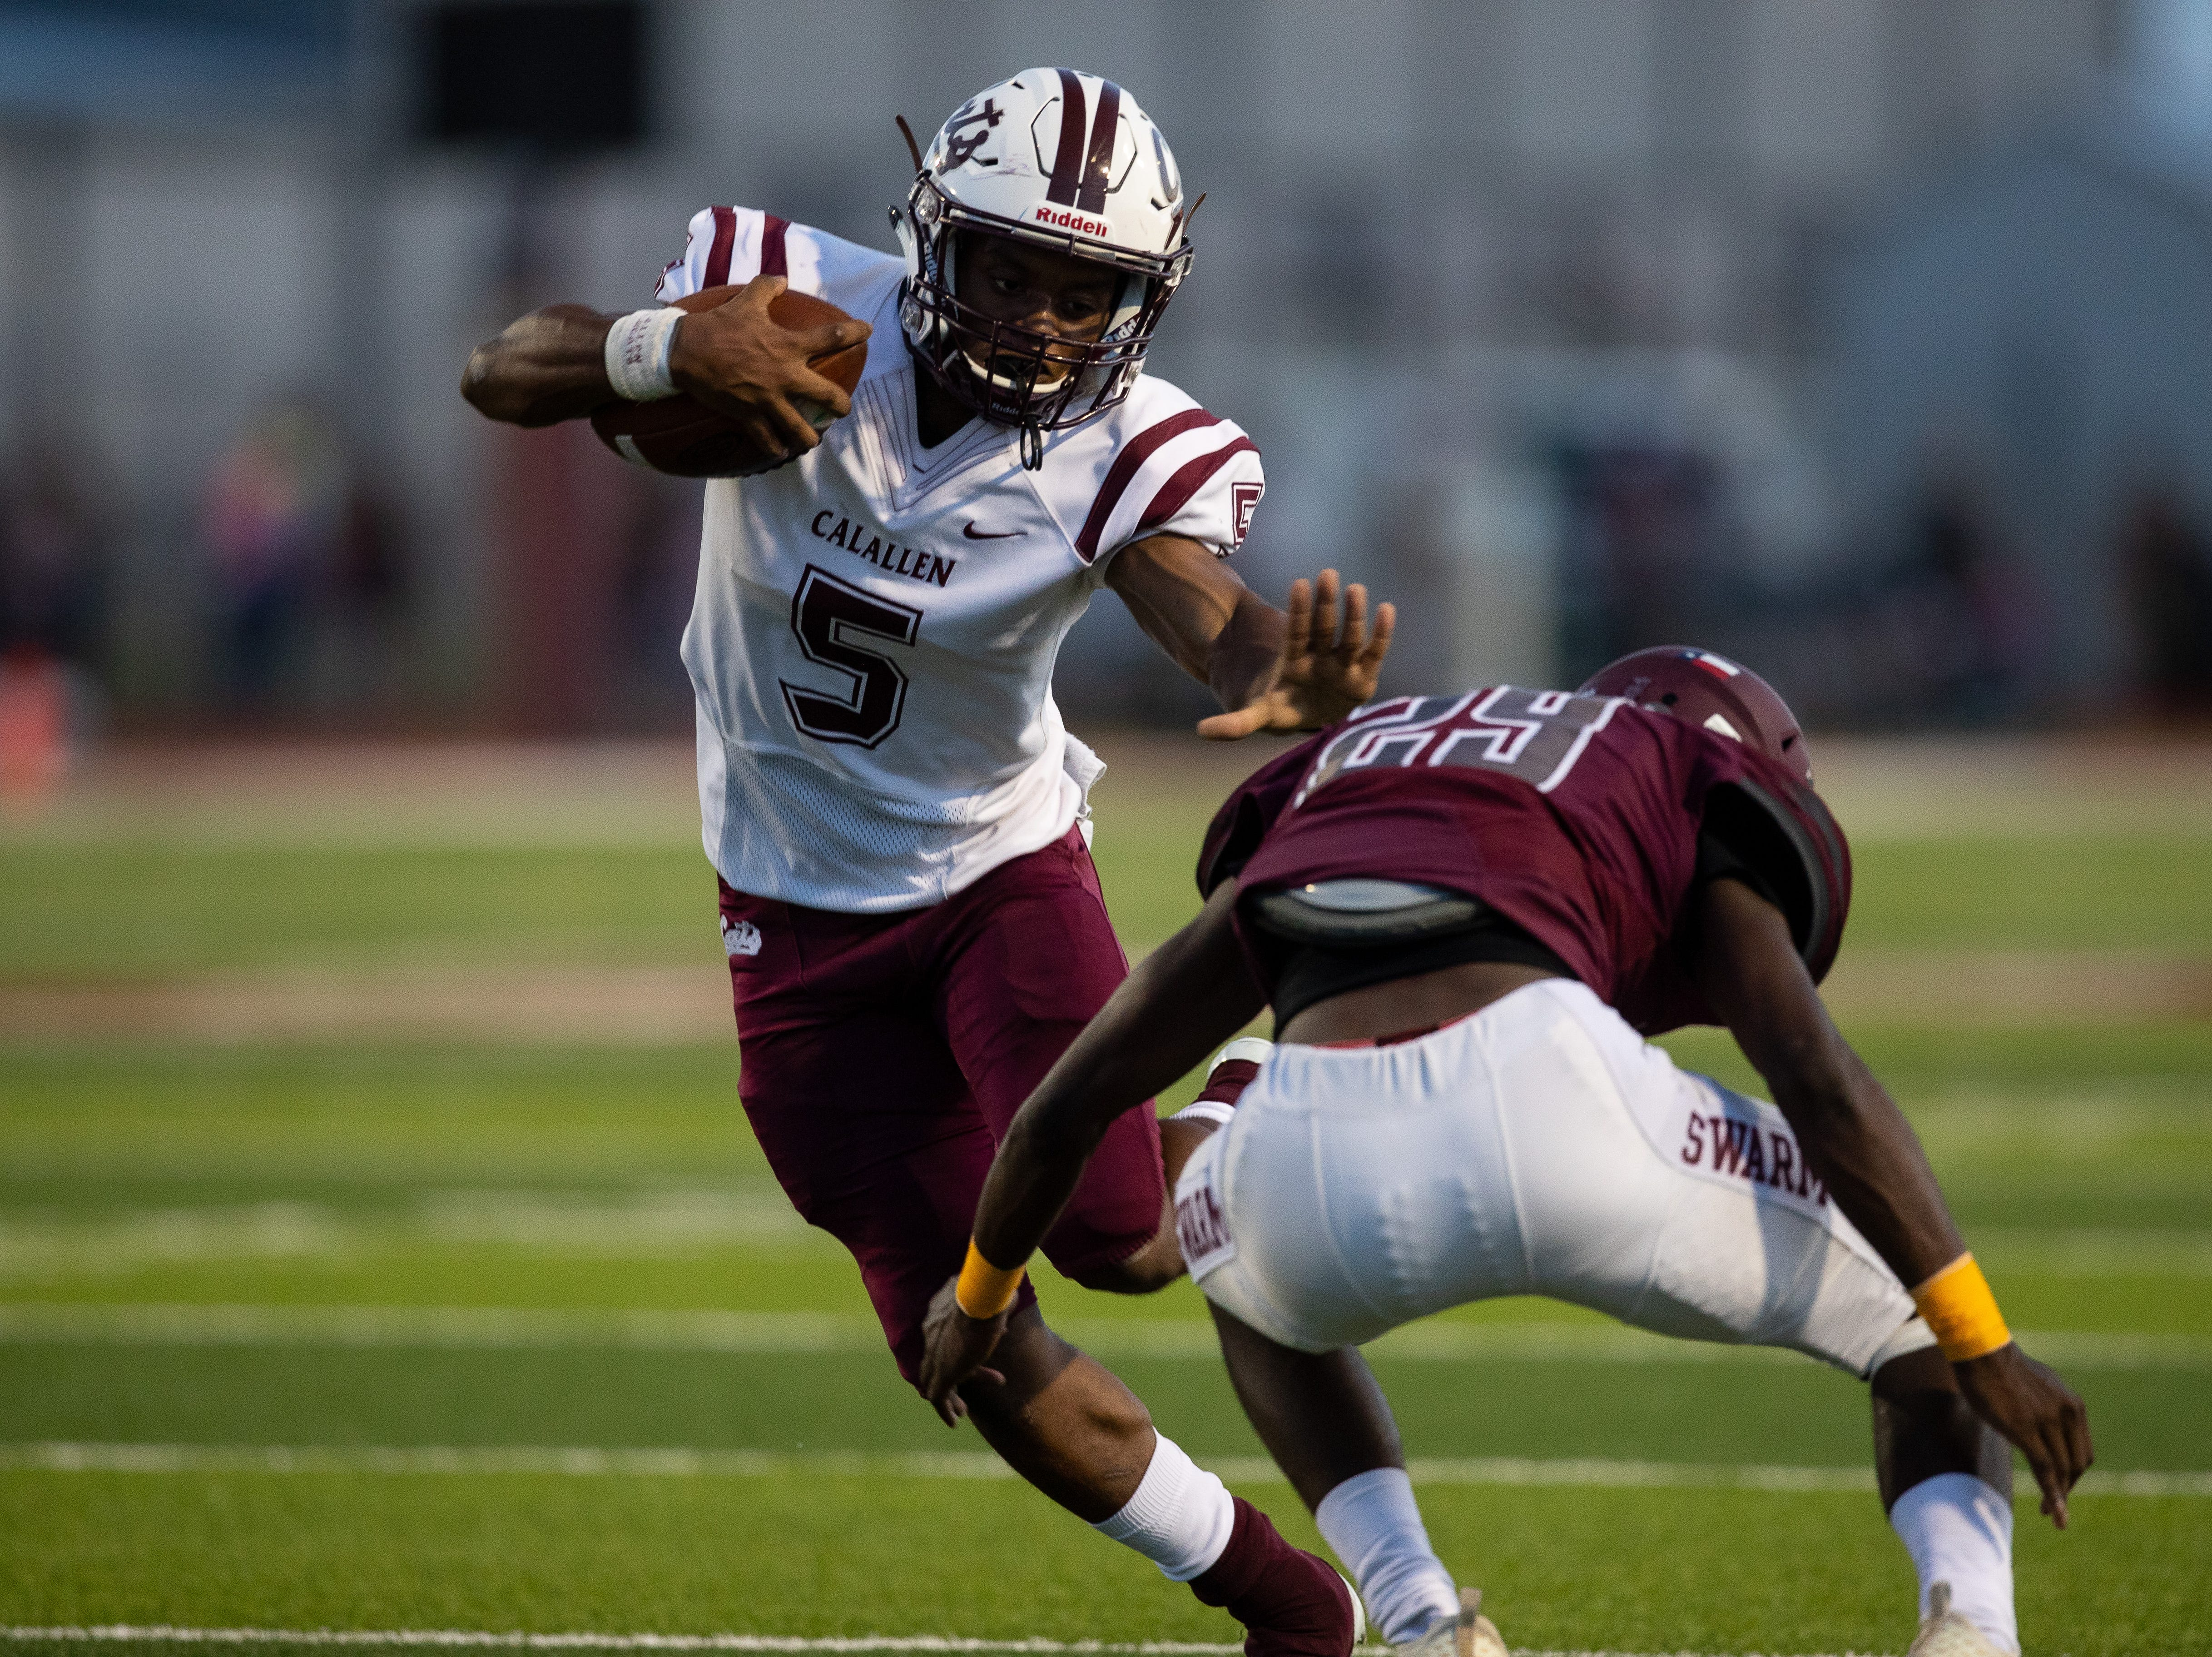 Calallen's Shenan Price runs the ball during the first quarter of their game against Flour Bluff at Hornets Stadium on Friday, Sept. 7, 2018.